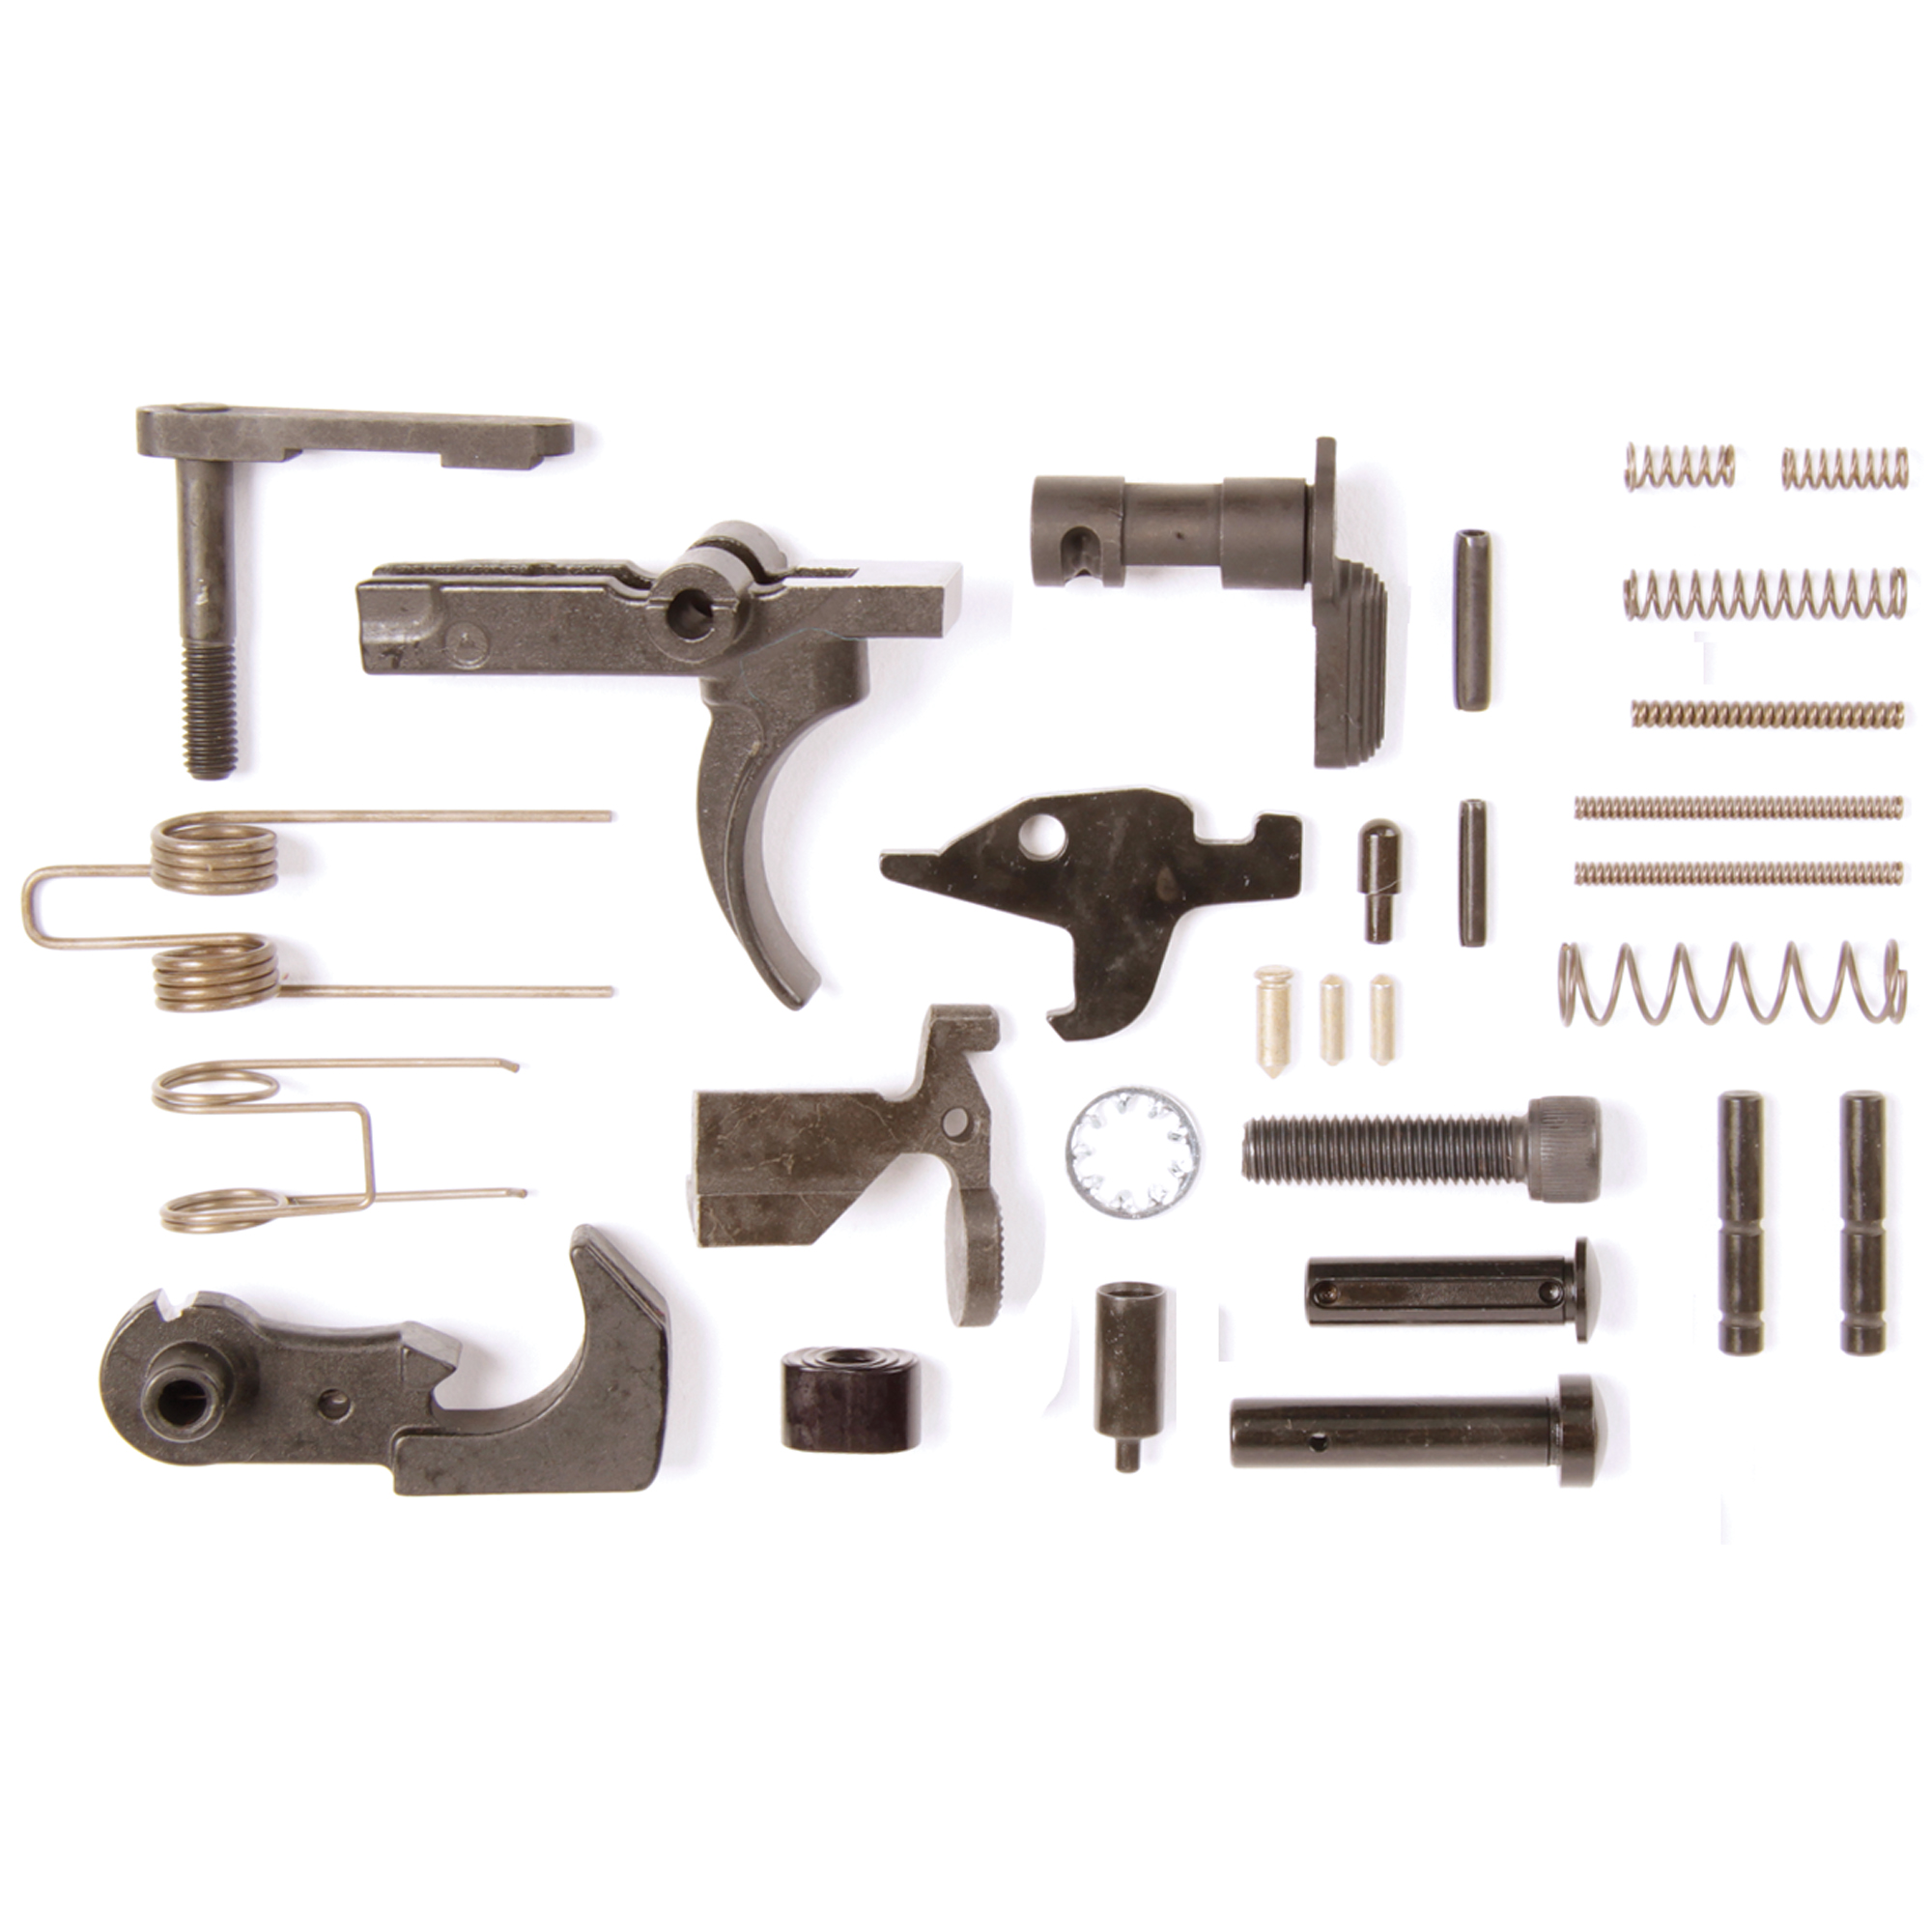 AR15 Lower Parts Kit-No Pistol Grip or Trigger Guard. Perfect for your next custom build.